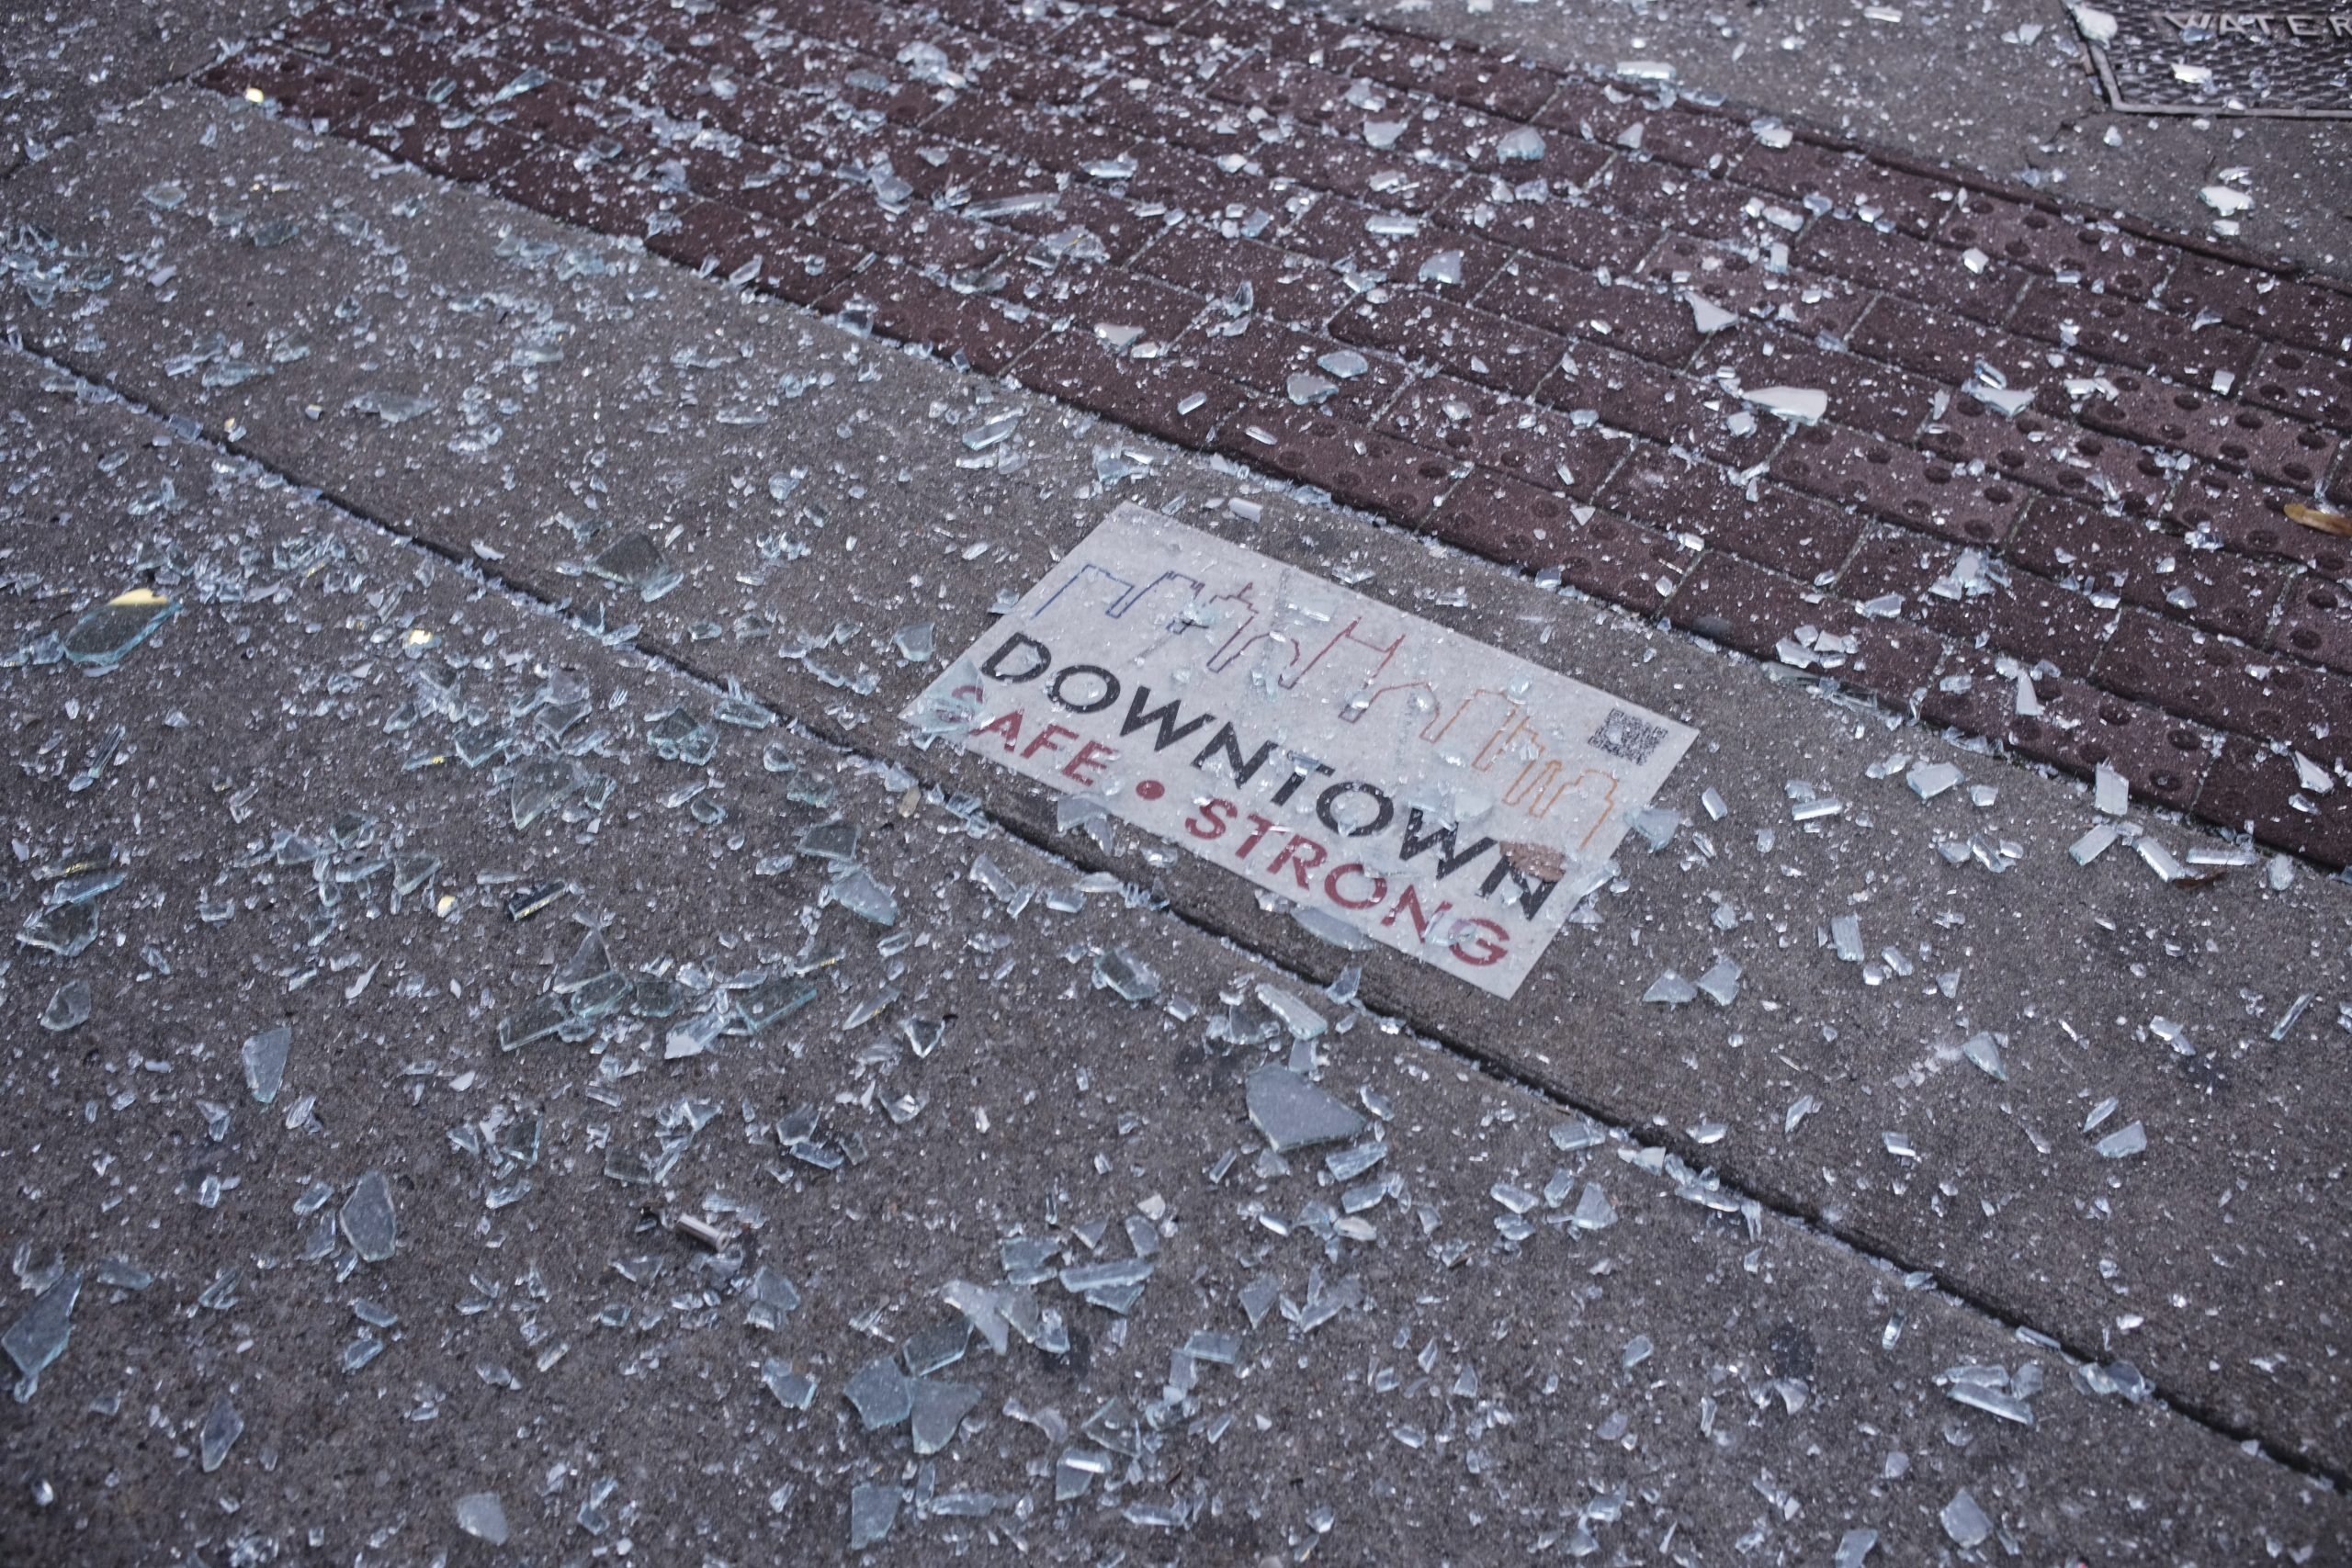 Broken glass on Second Avenue in Nashville. (Photo: Ray DiPietro)